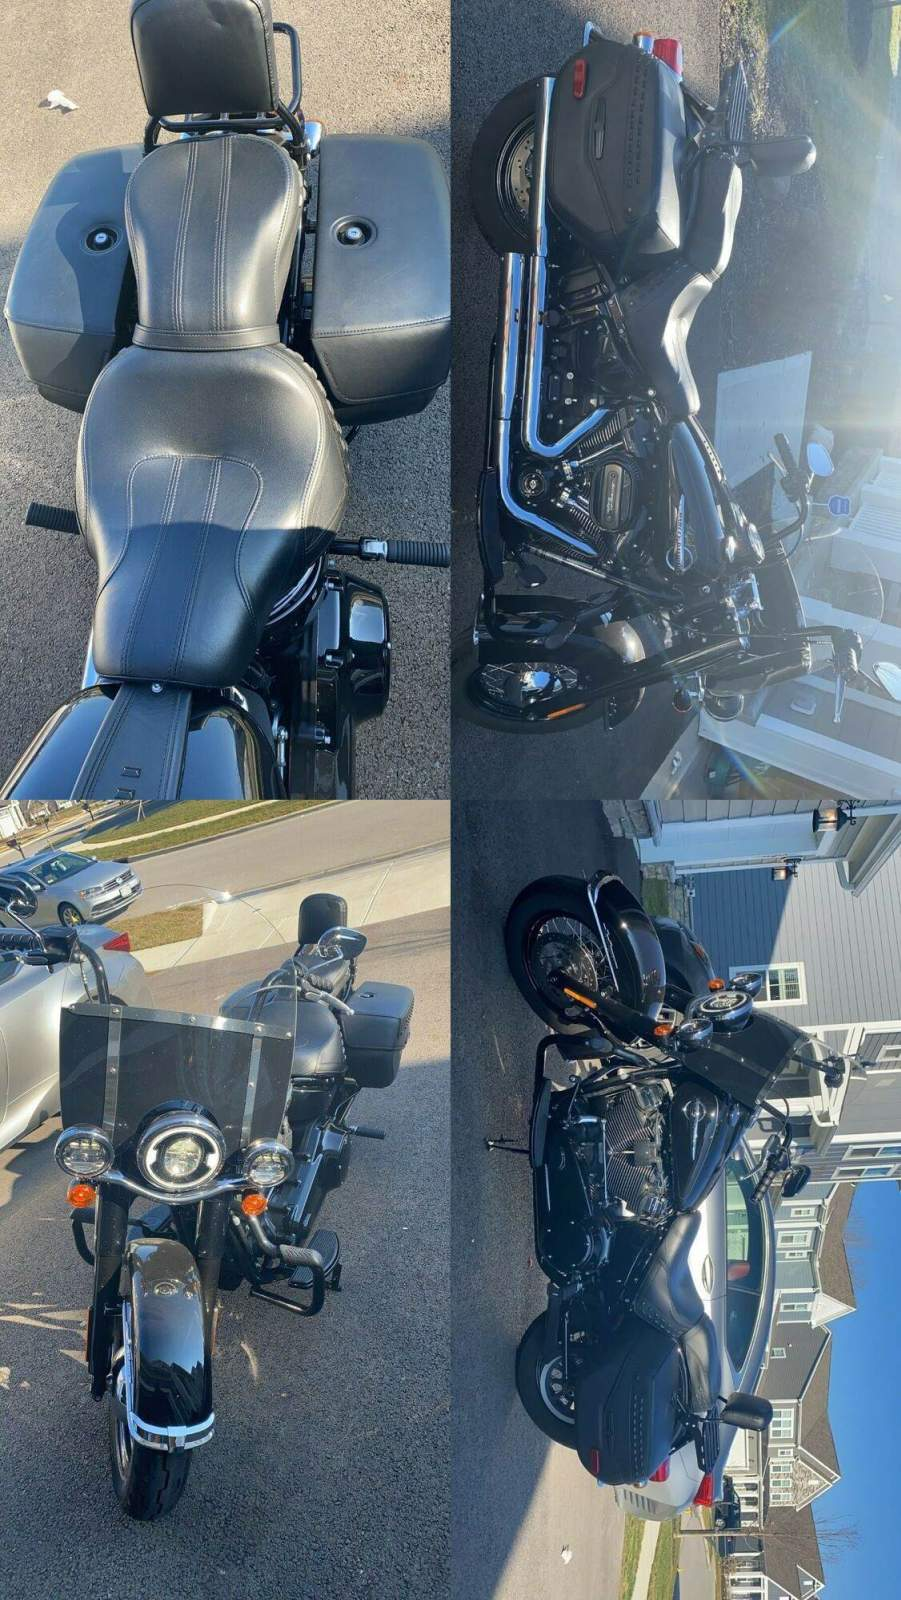 2018 Harley-Davidson FLHC Heritage Softail Classic 107 Black used for sale